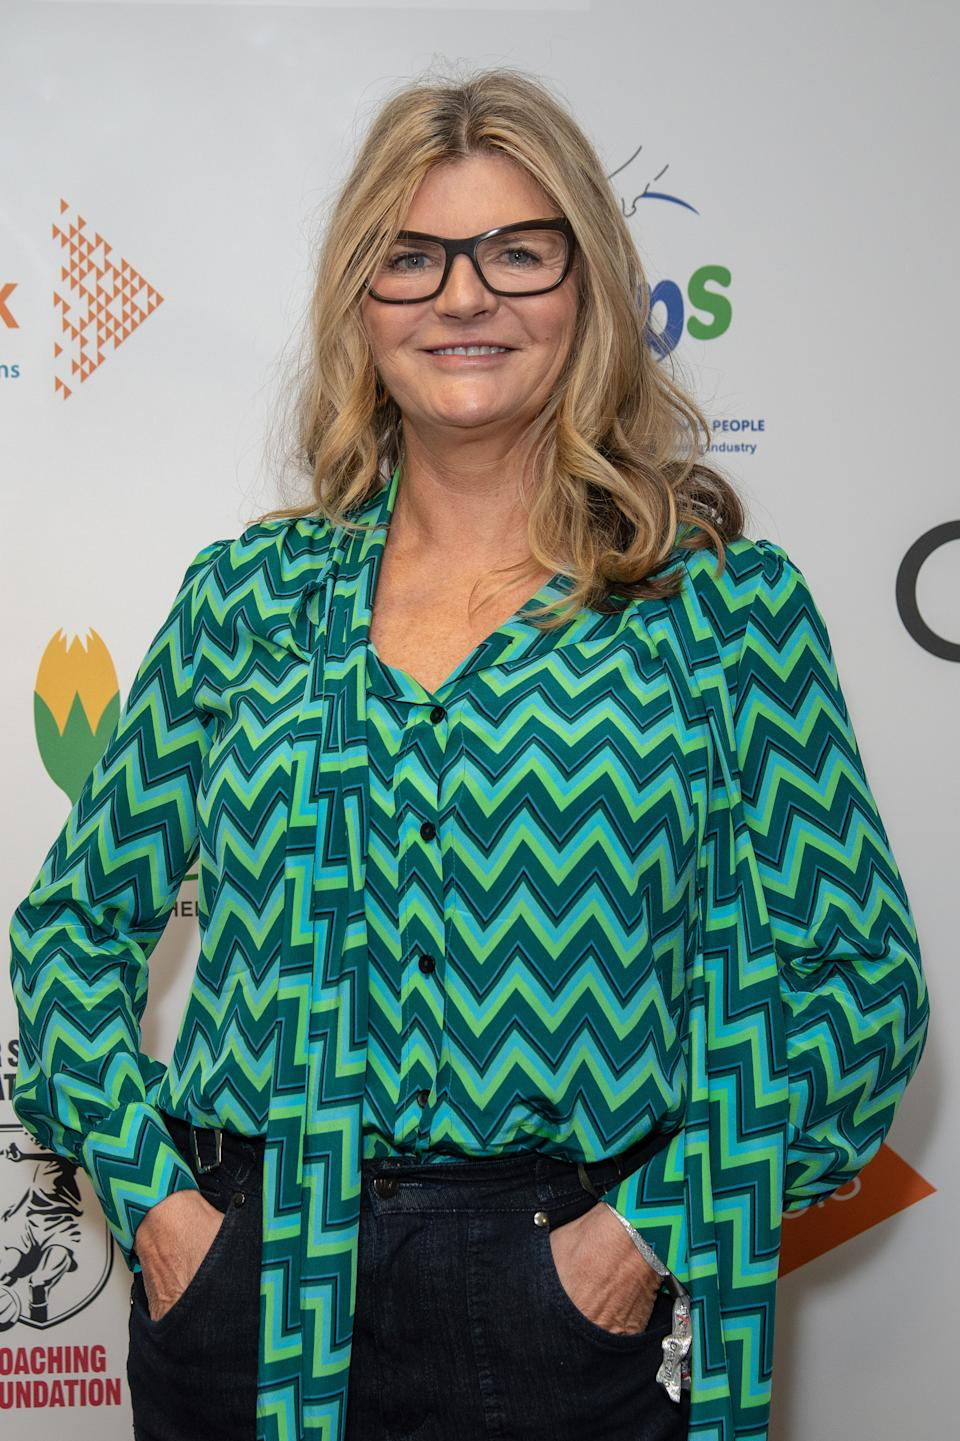 Susannah Constantine revealed last year that she is an alcoholic who has been in recovery for seven years. (PA Images)